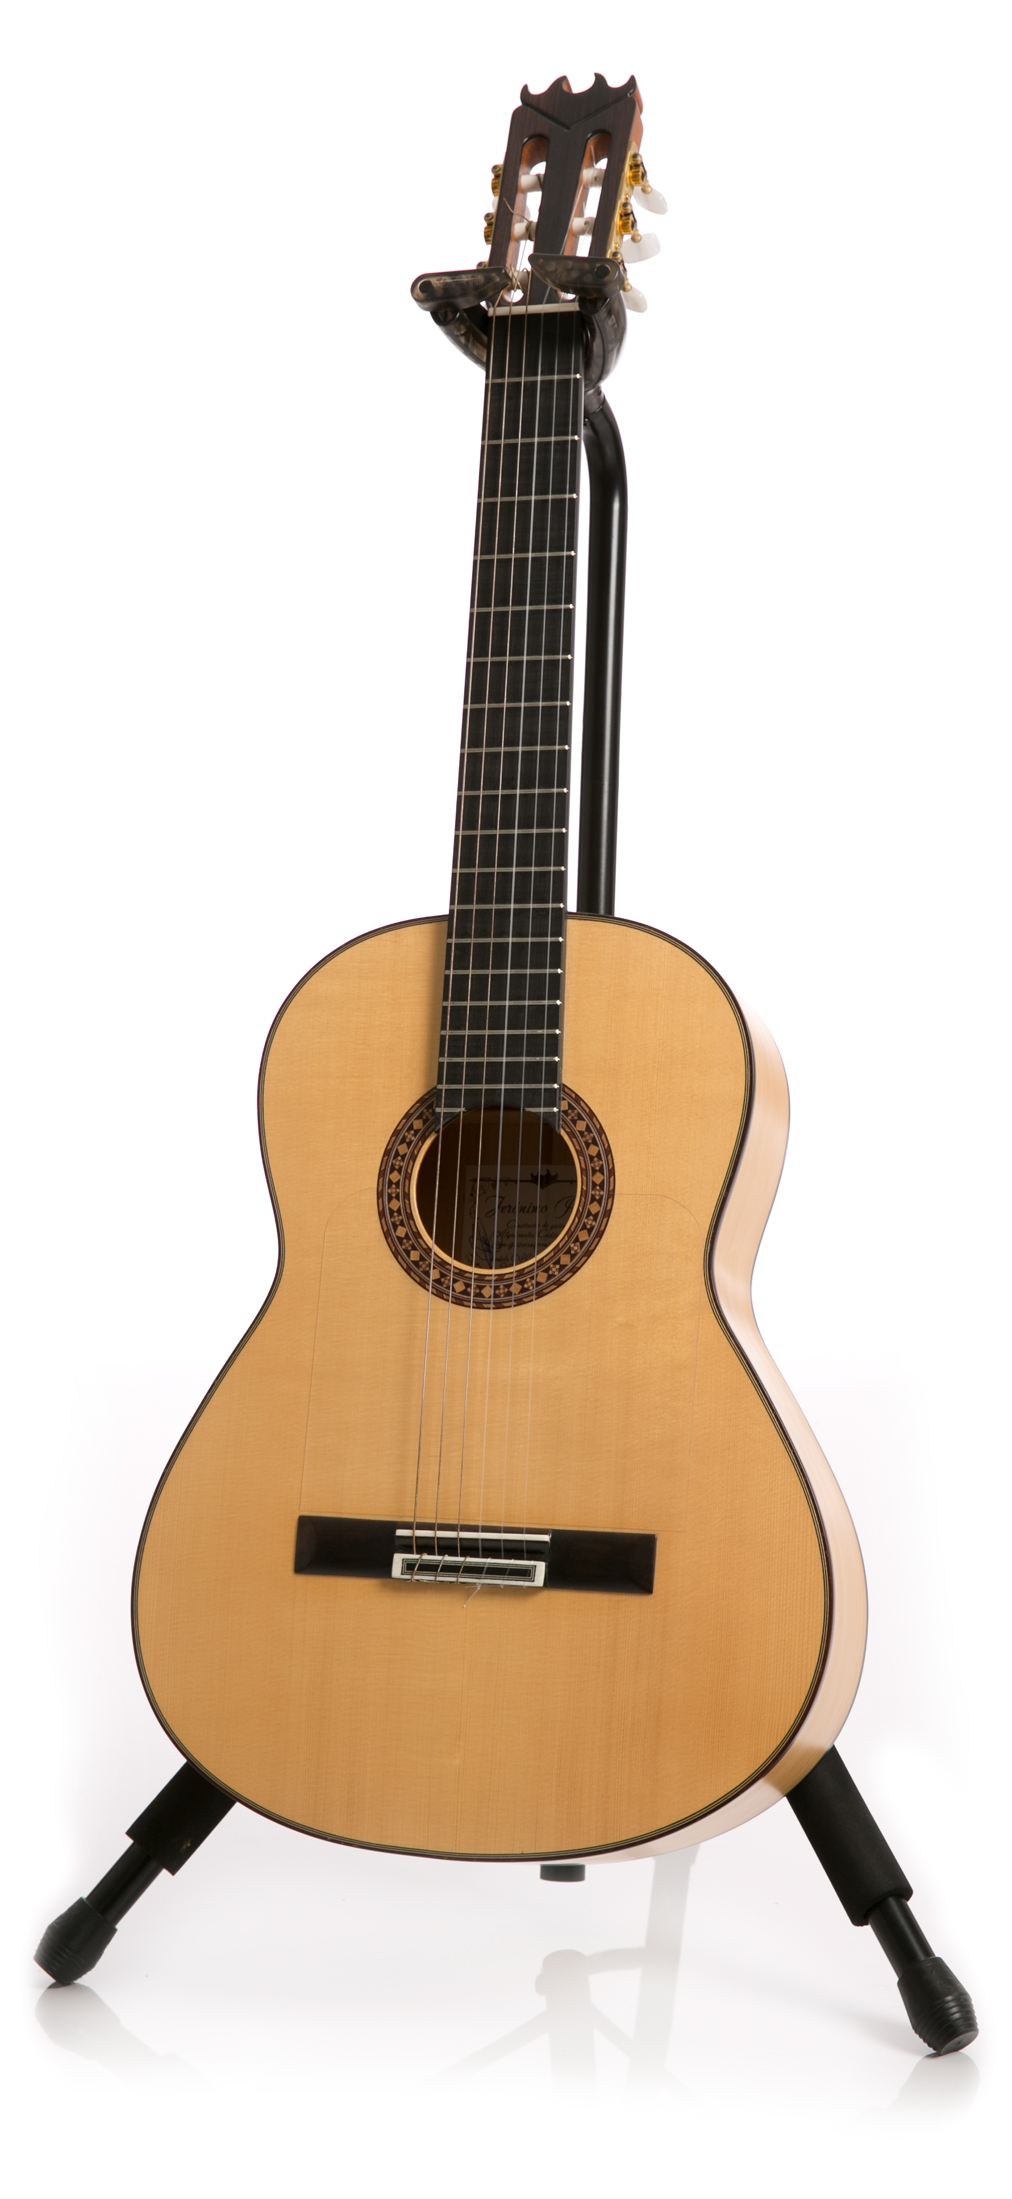 The finest handmade flamenco guitars